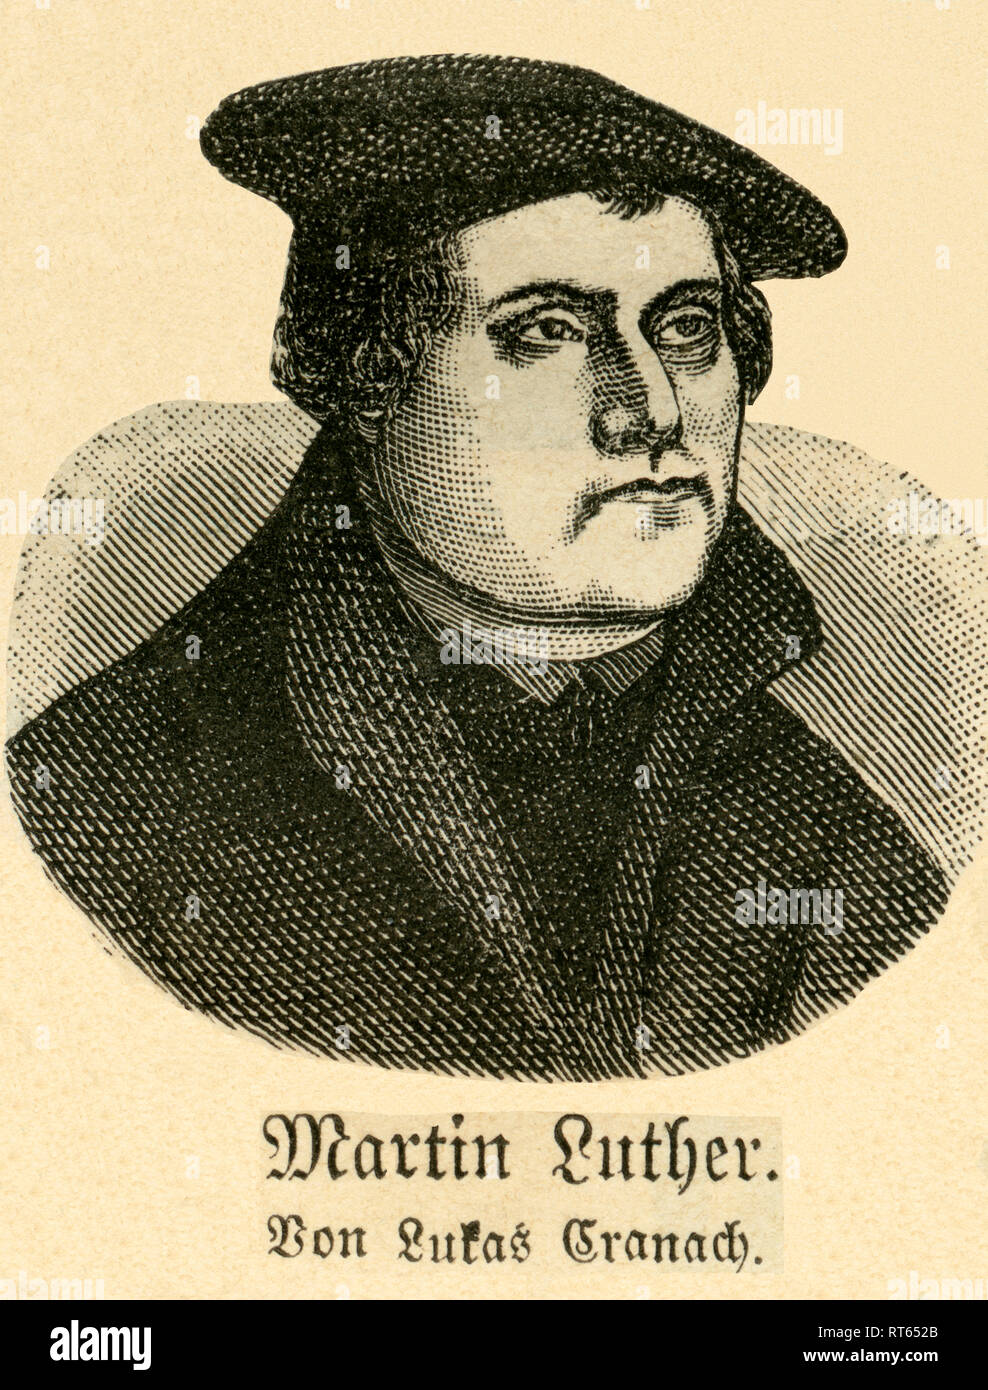 Martin Luther (by Lukas Cranach), portrait, German theologian and Reformer, illustration from: 'Die Welt in Bildern ' (images of the world), published by Dr. Chr. G. Hottinger in self-publishing, Berlin / Strasbourg, 1881., Additional-Rights-Clearance-Info-Not-Available - Stock Image